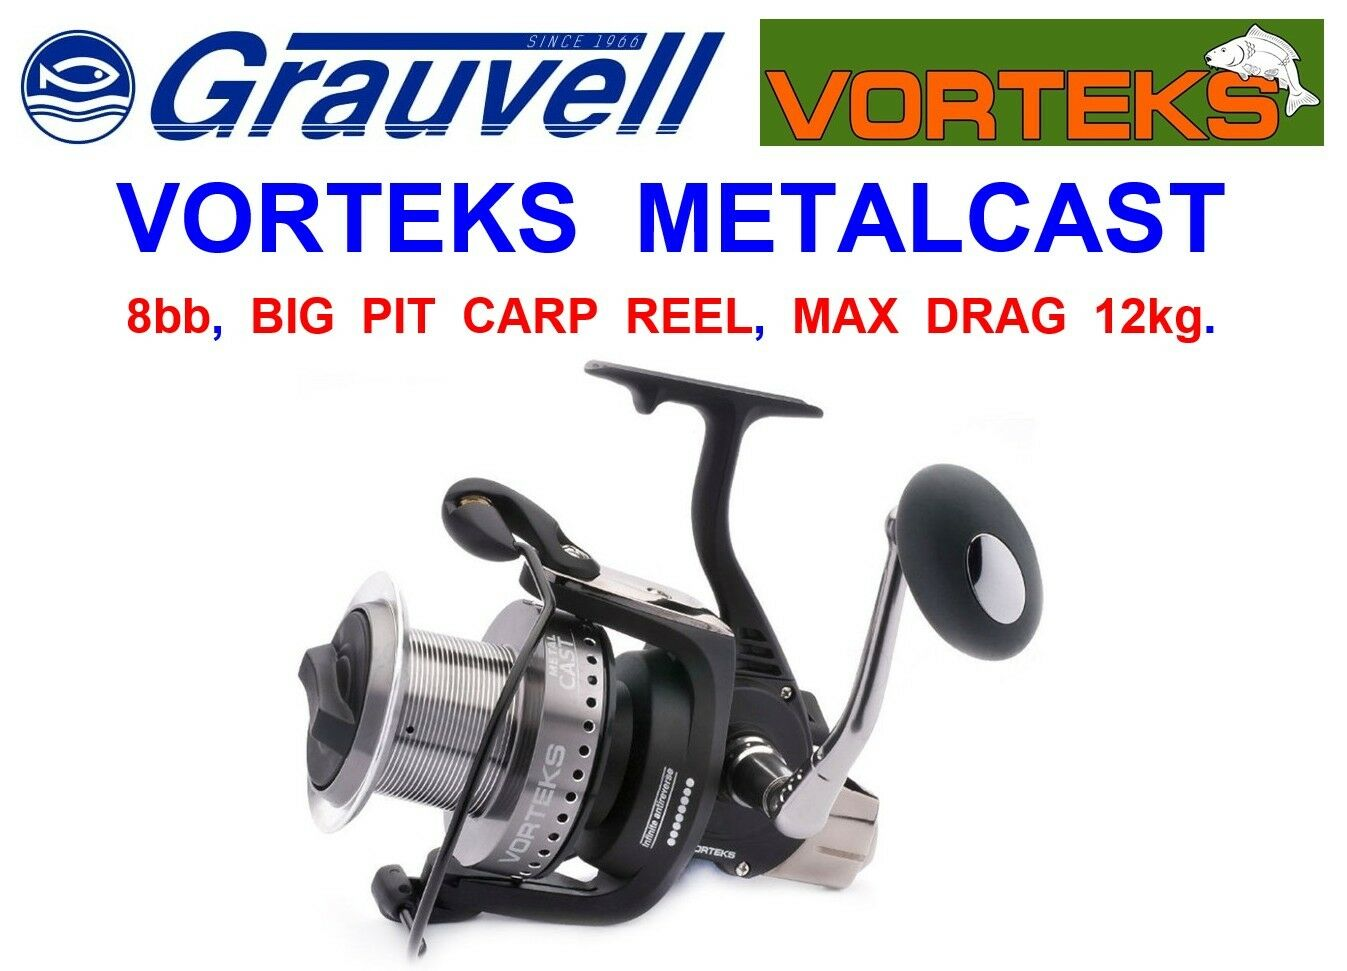 greyVELL VORTEKS METALCAST FD-7000 BIG PIT CARP REEL FOR SPOD MARKER ROD FISHING